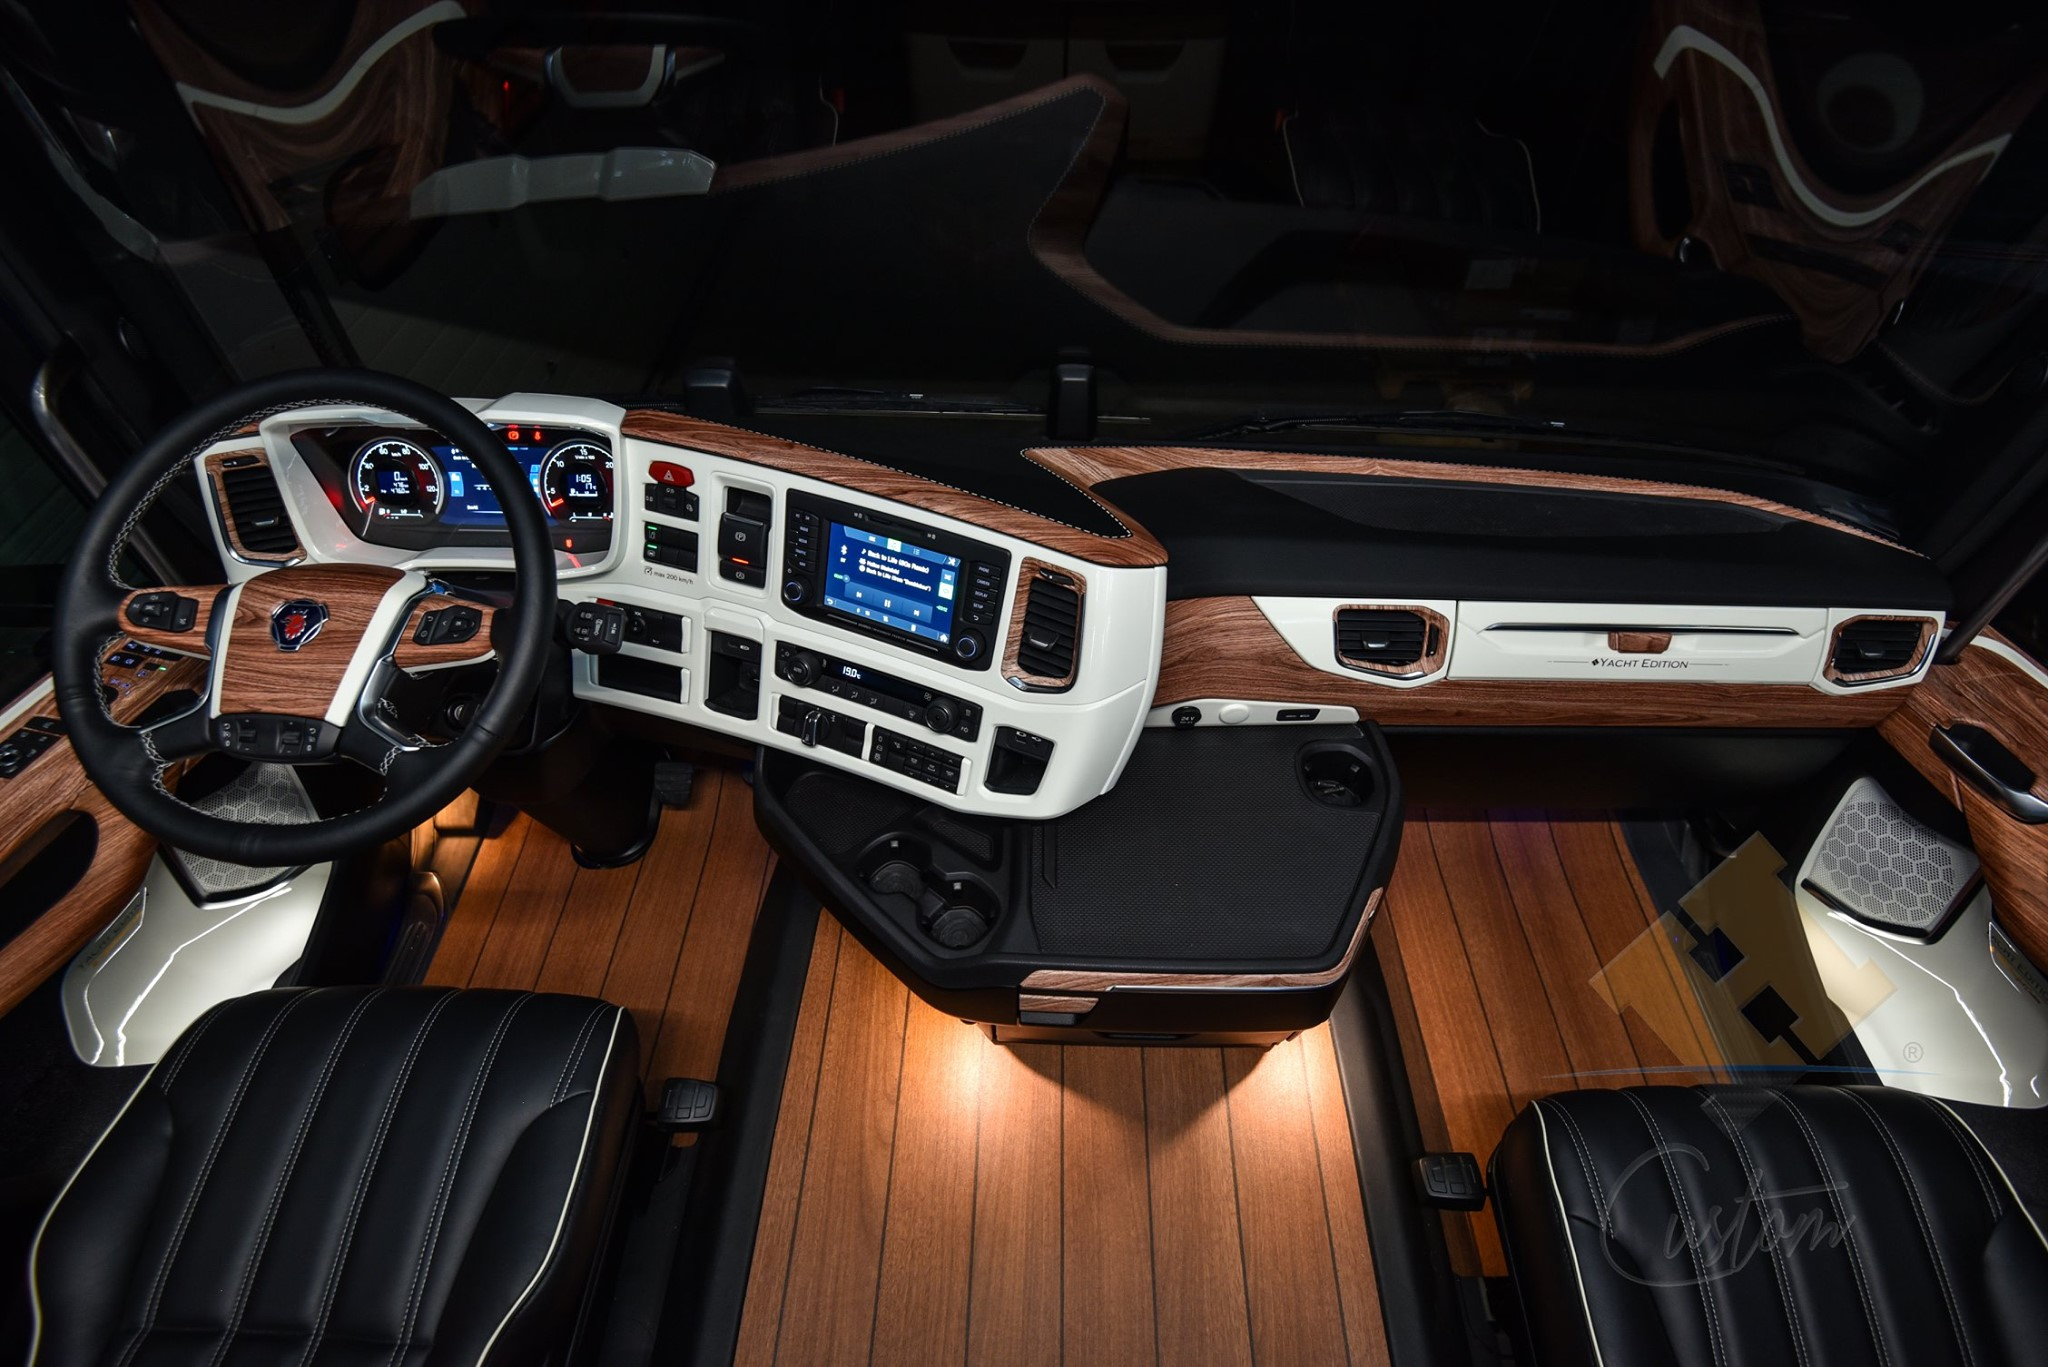 """Check out this Scania tuning: a luxurious cab with a """"yacht"""" interior"""